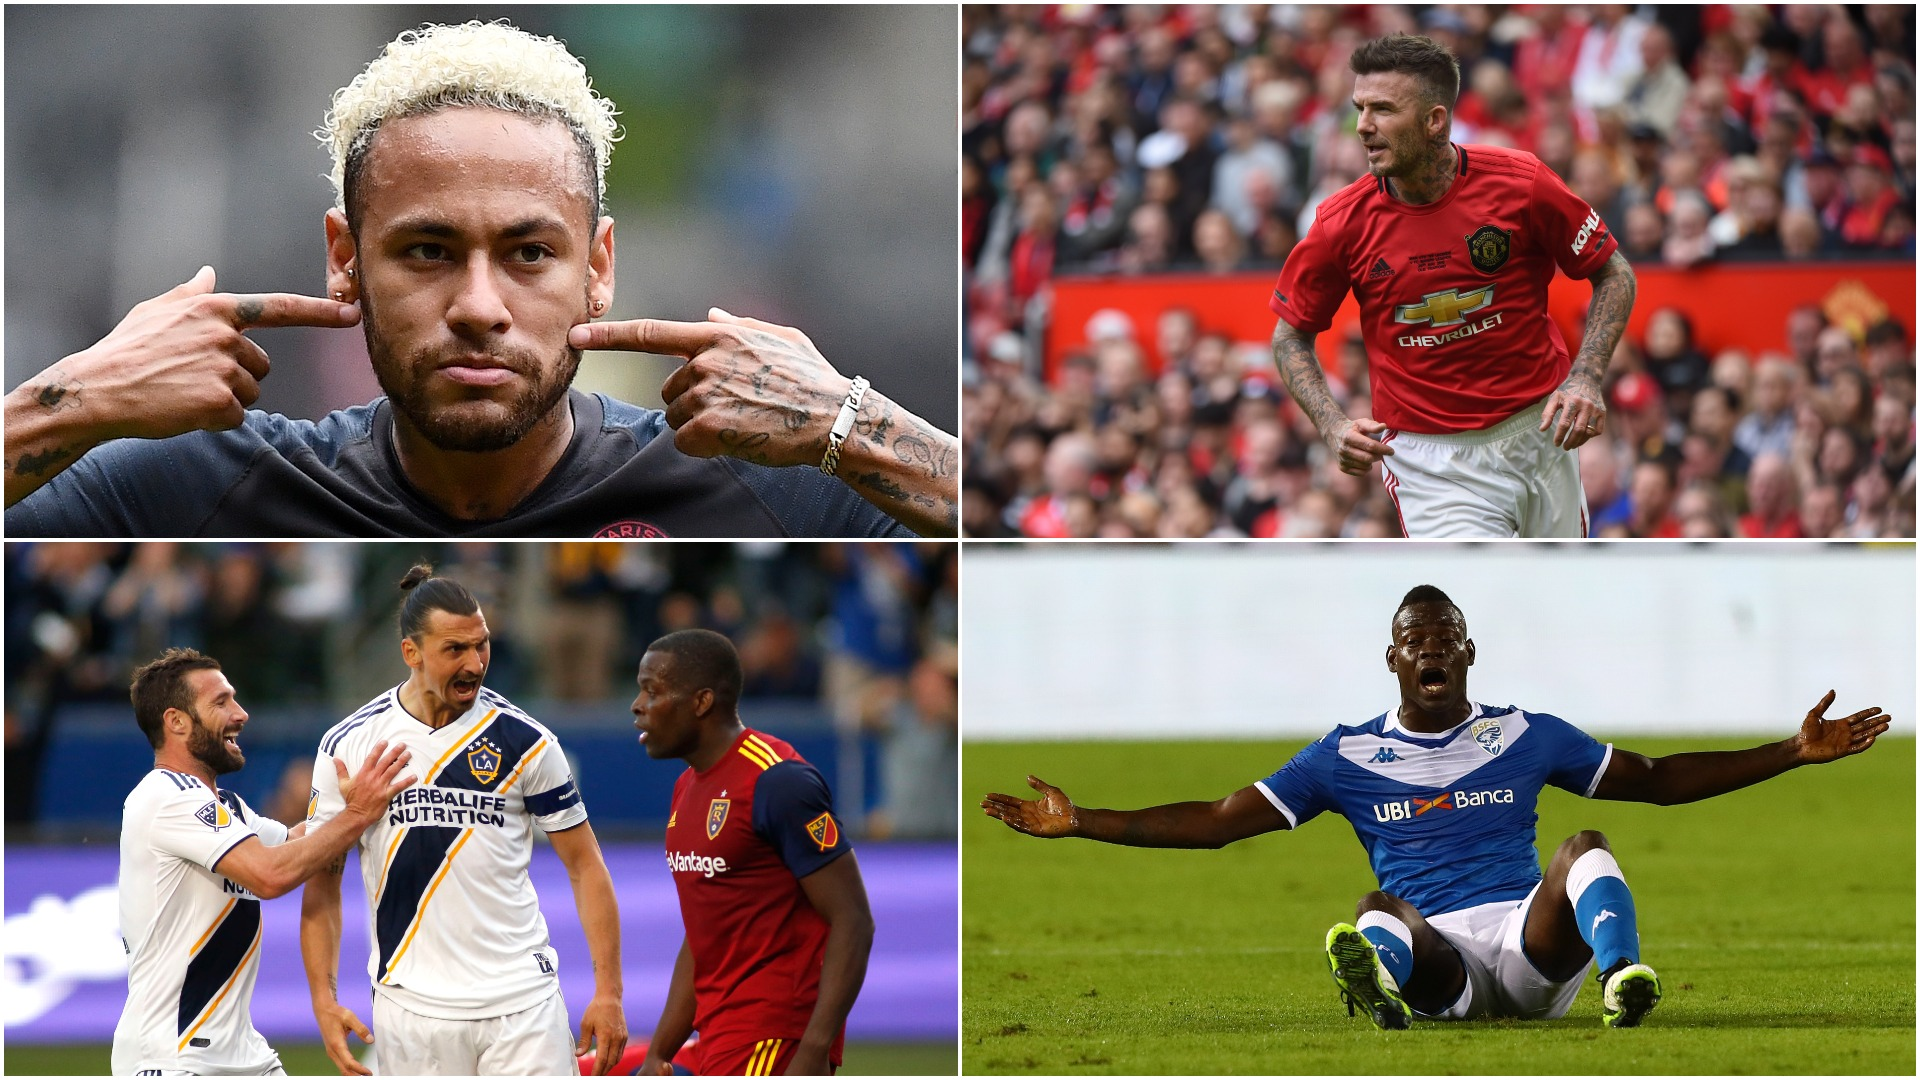 Sterling v Gomez: Beckham, Neymar, Ibrahimovic and other memorable behind-the-scenes bust-ups